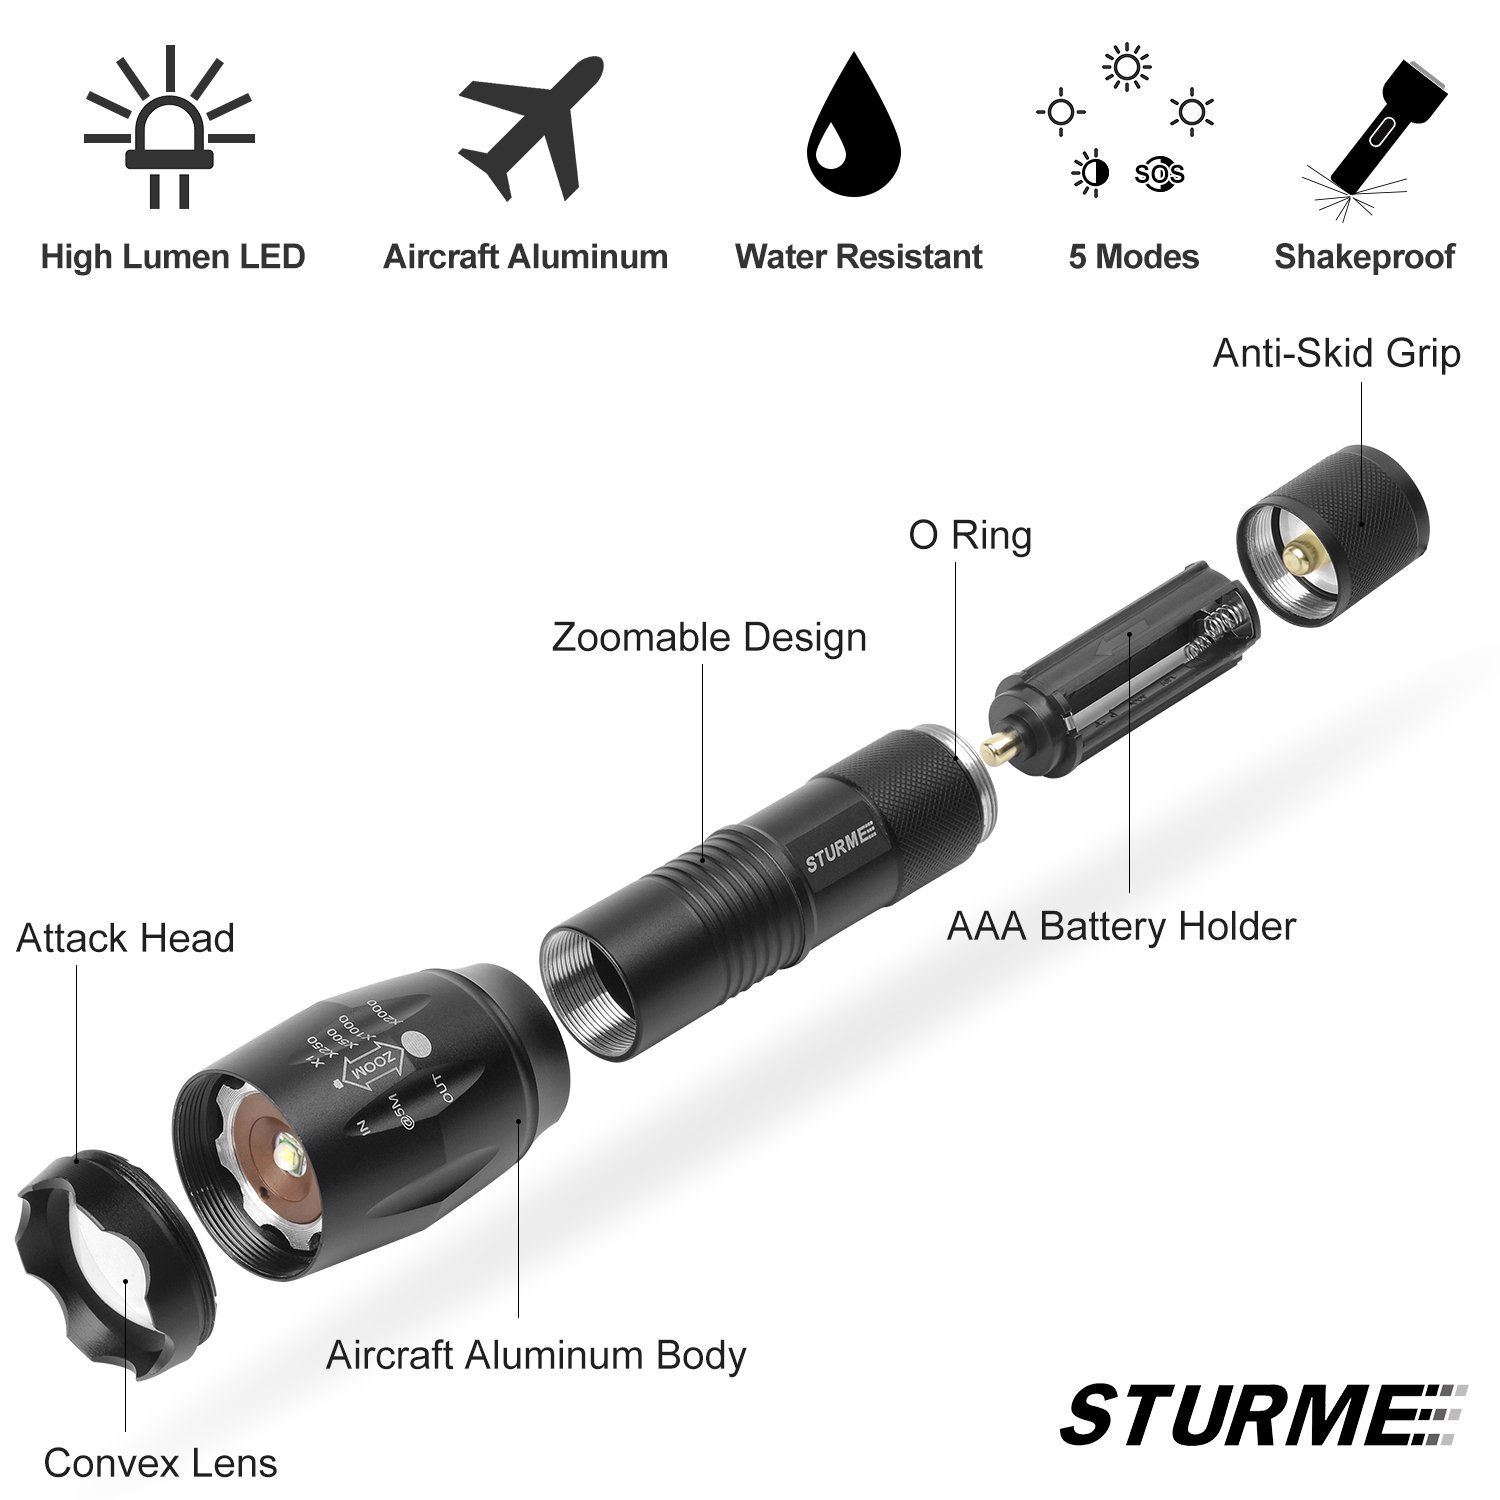 STURME Super Bright LED Torch High Lumens 1000 Feet Bright Distance Adjustable Focus LED Flashlight with 5 Modes IP65 Water-Resistant Perfect for Camping Outdoor Sports Home Use